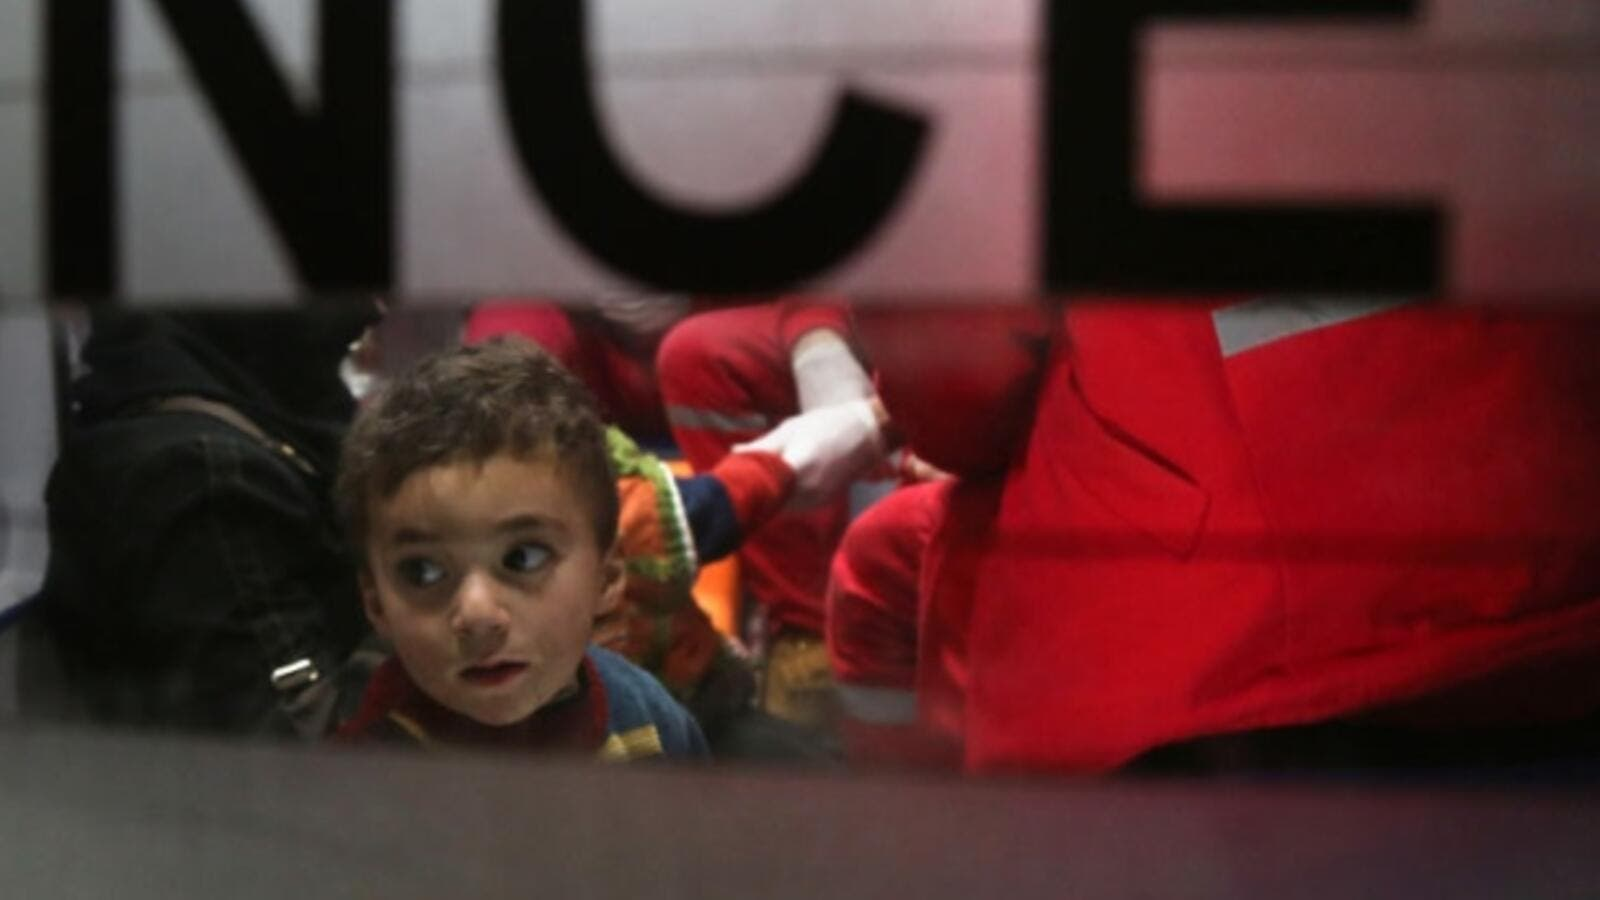 More than 600 patients are on the medical evacuation list because there is no treatment available for them in the besieged area (AFP/File)